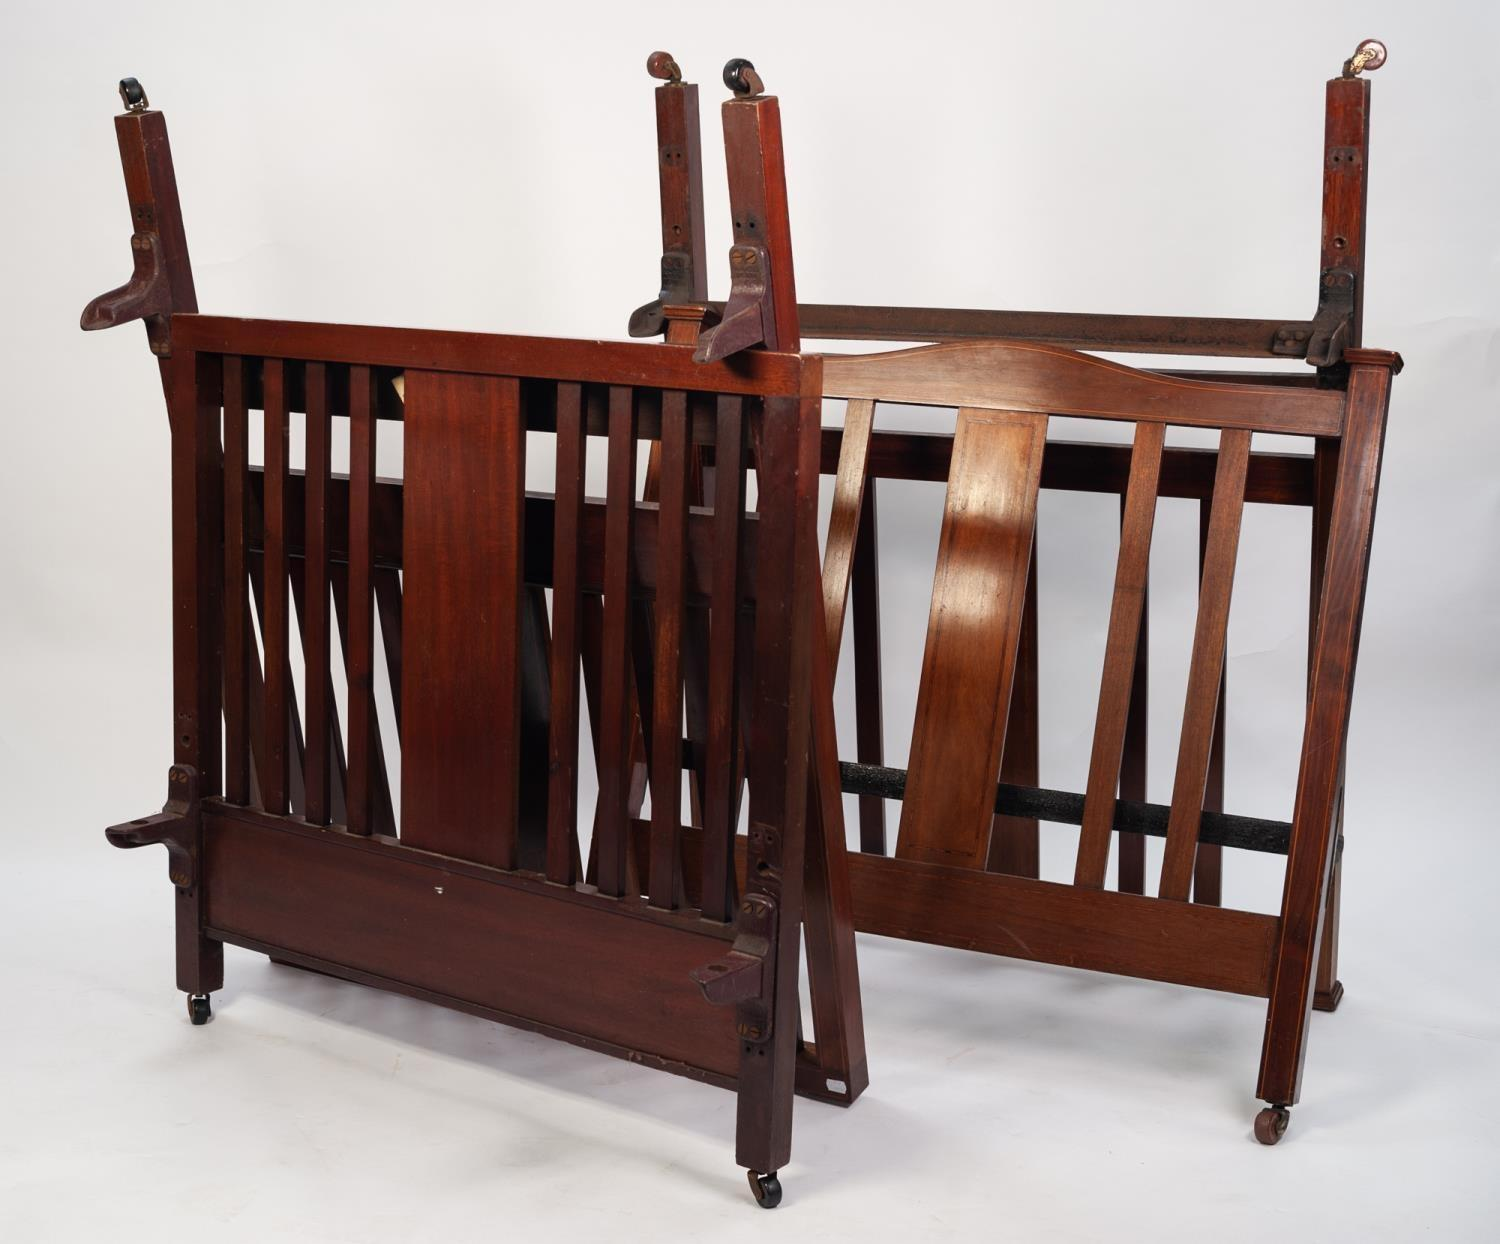 Lot 66 - WARING & GILLOWS, TWO SIMILAR EDWARDIAN INLAID MAHOGANY SINGLE BED ENDS, each of slatted form with